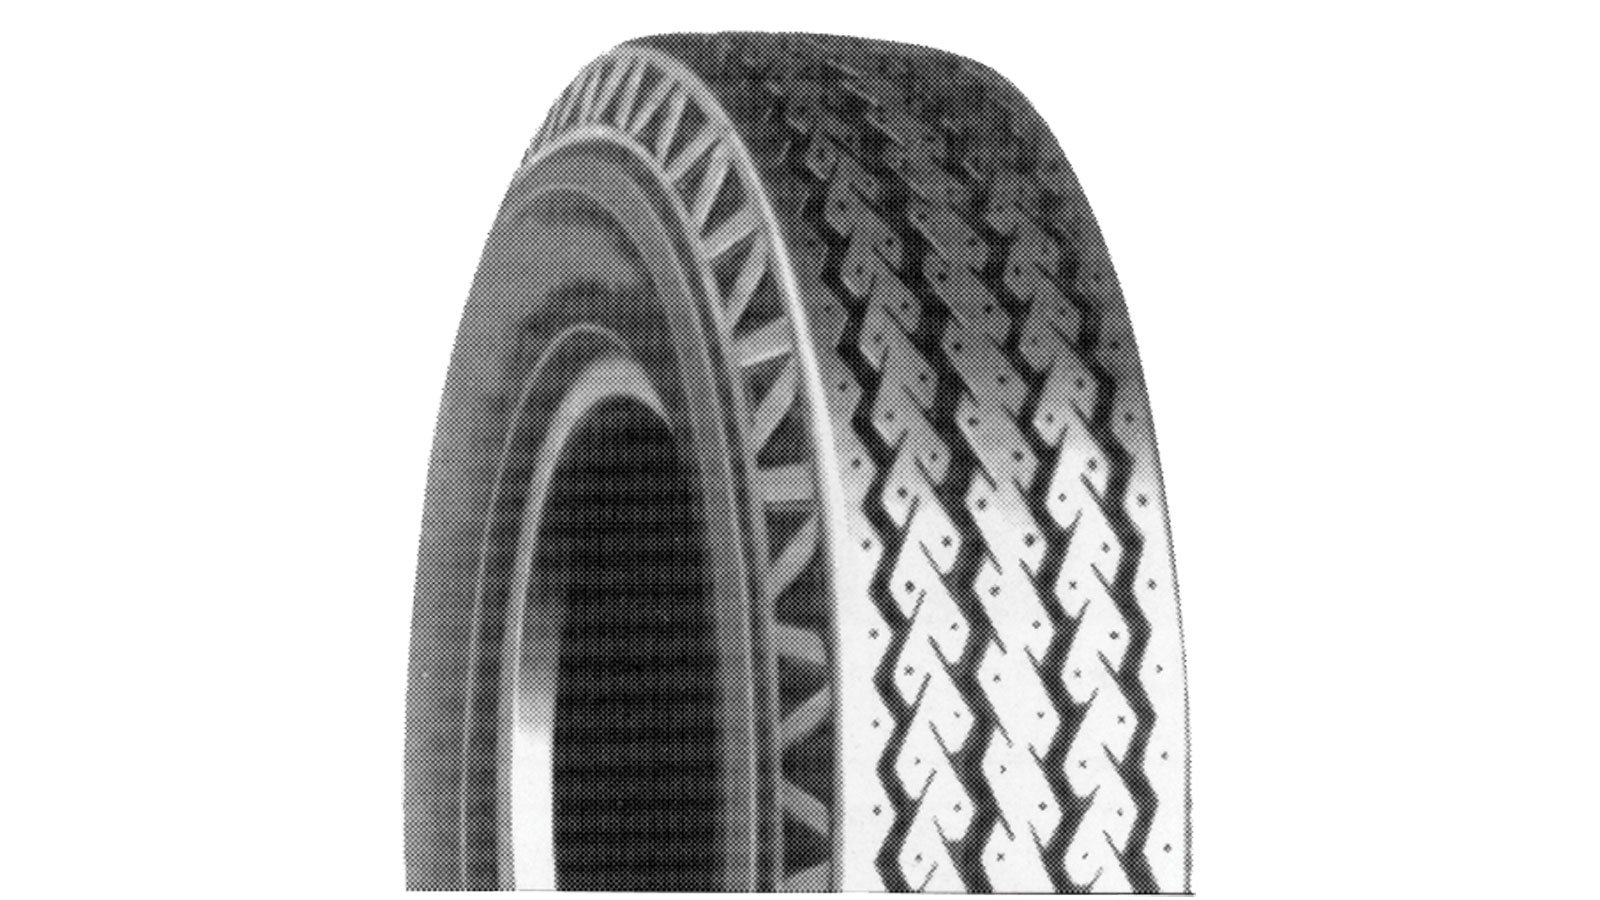 attwood Tailer Tires Black Sidewalls Boat Trailers